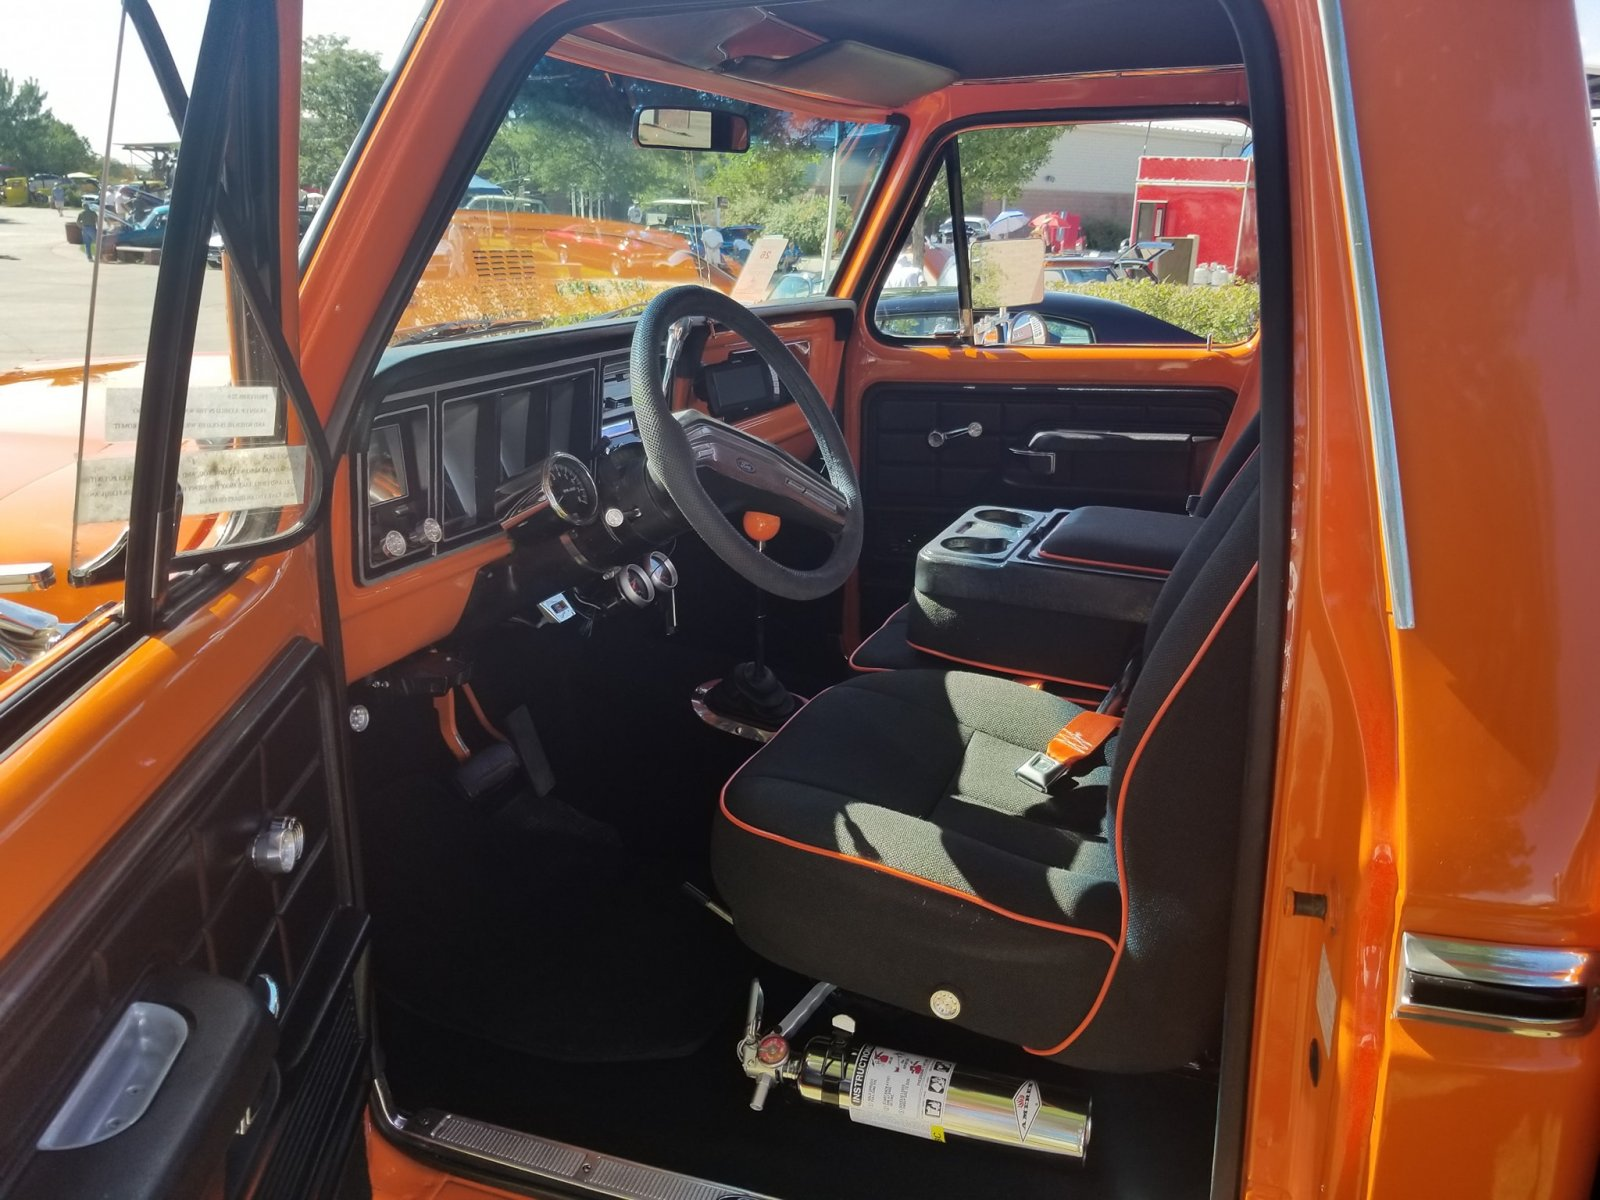 1979 Ford F250 Truck Has A 460ci With A C6 Transmission 5.jpg